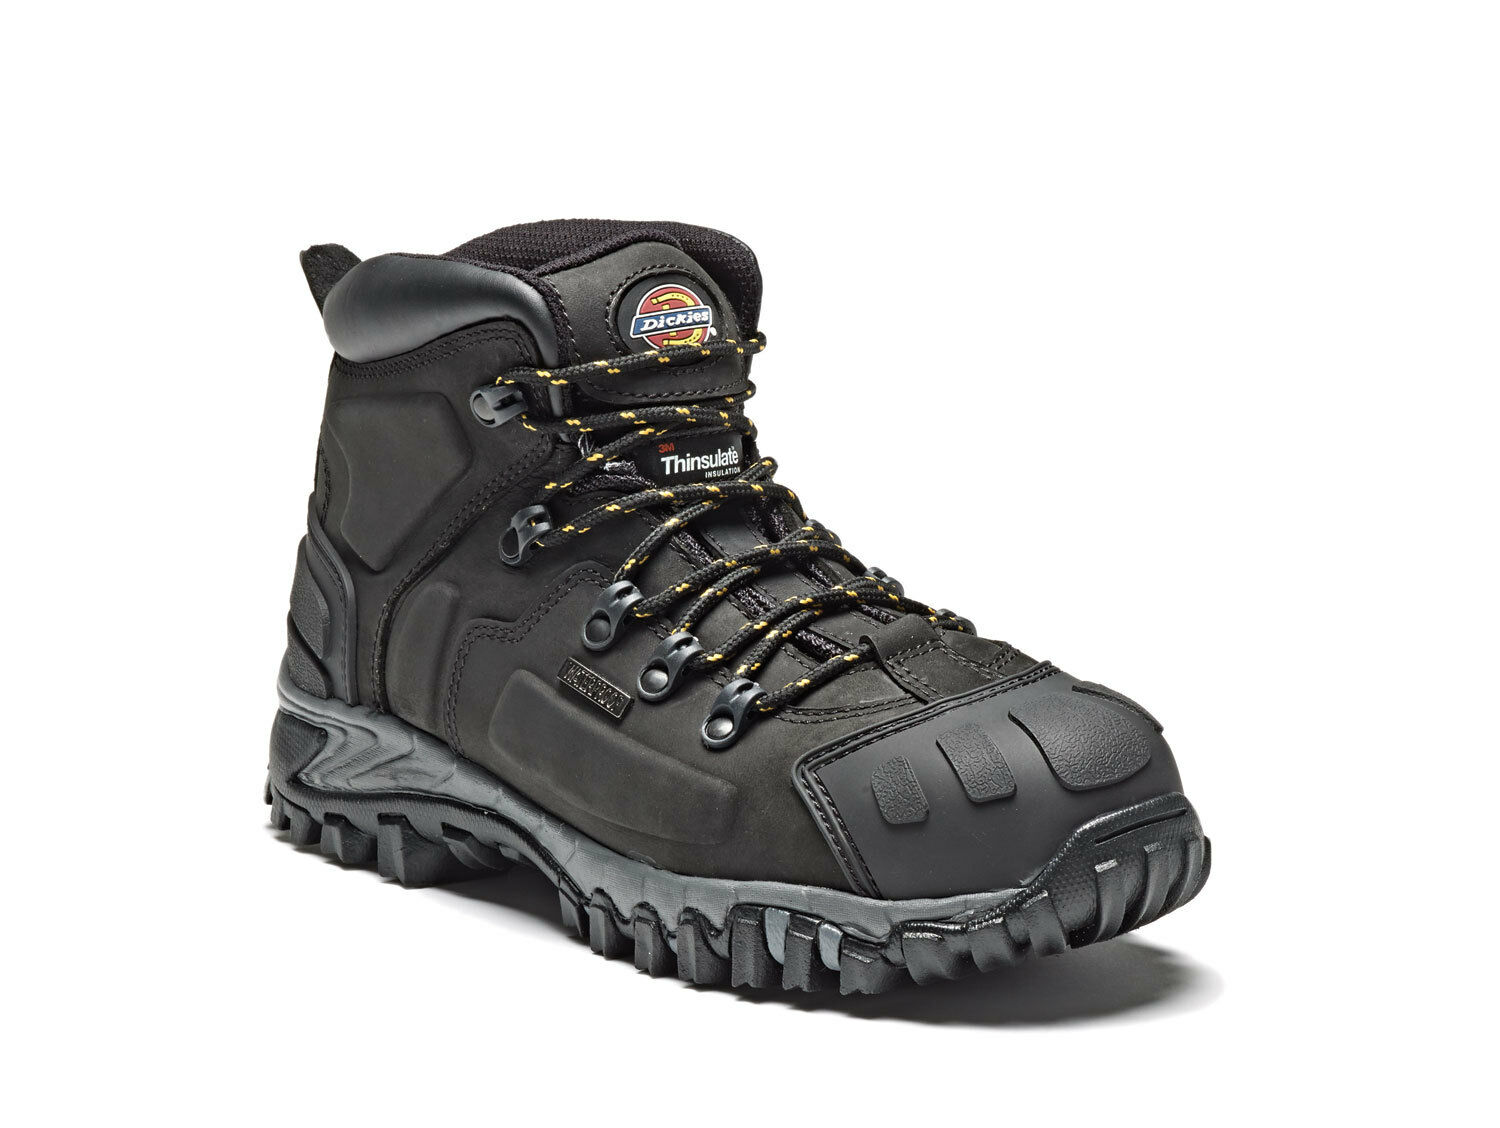 Dickies Medway Super Safety Boot FD23310 Sizes 5 - 12